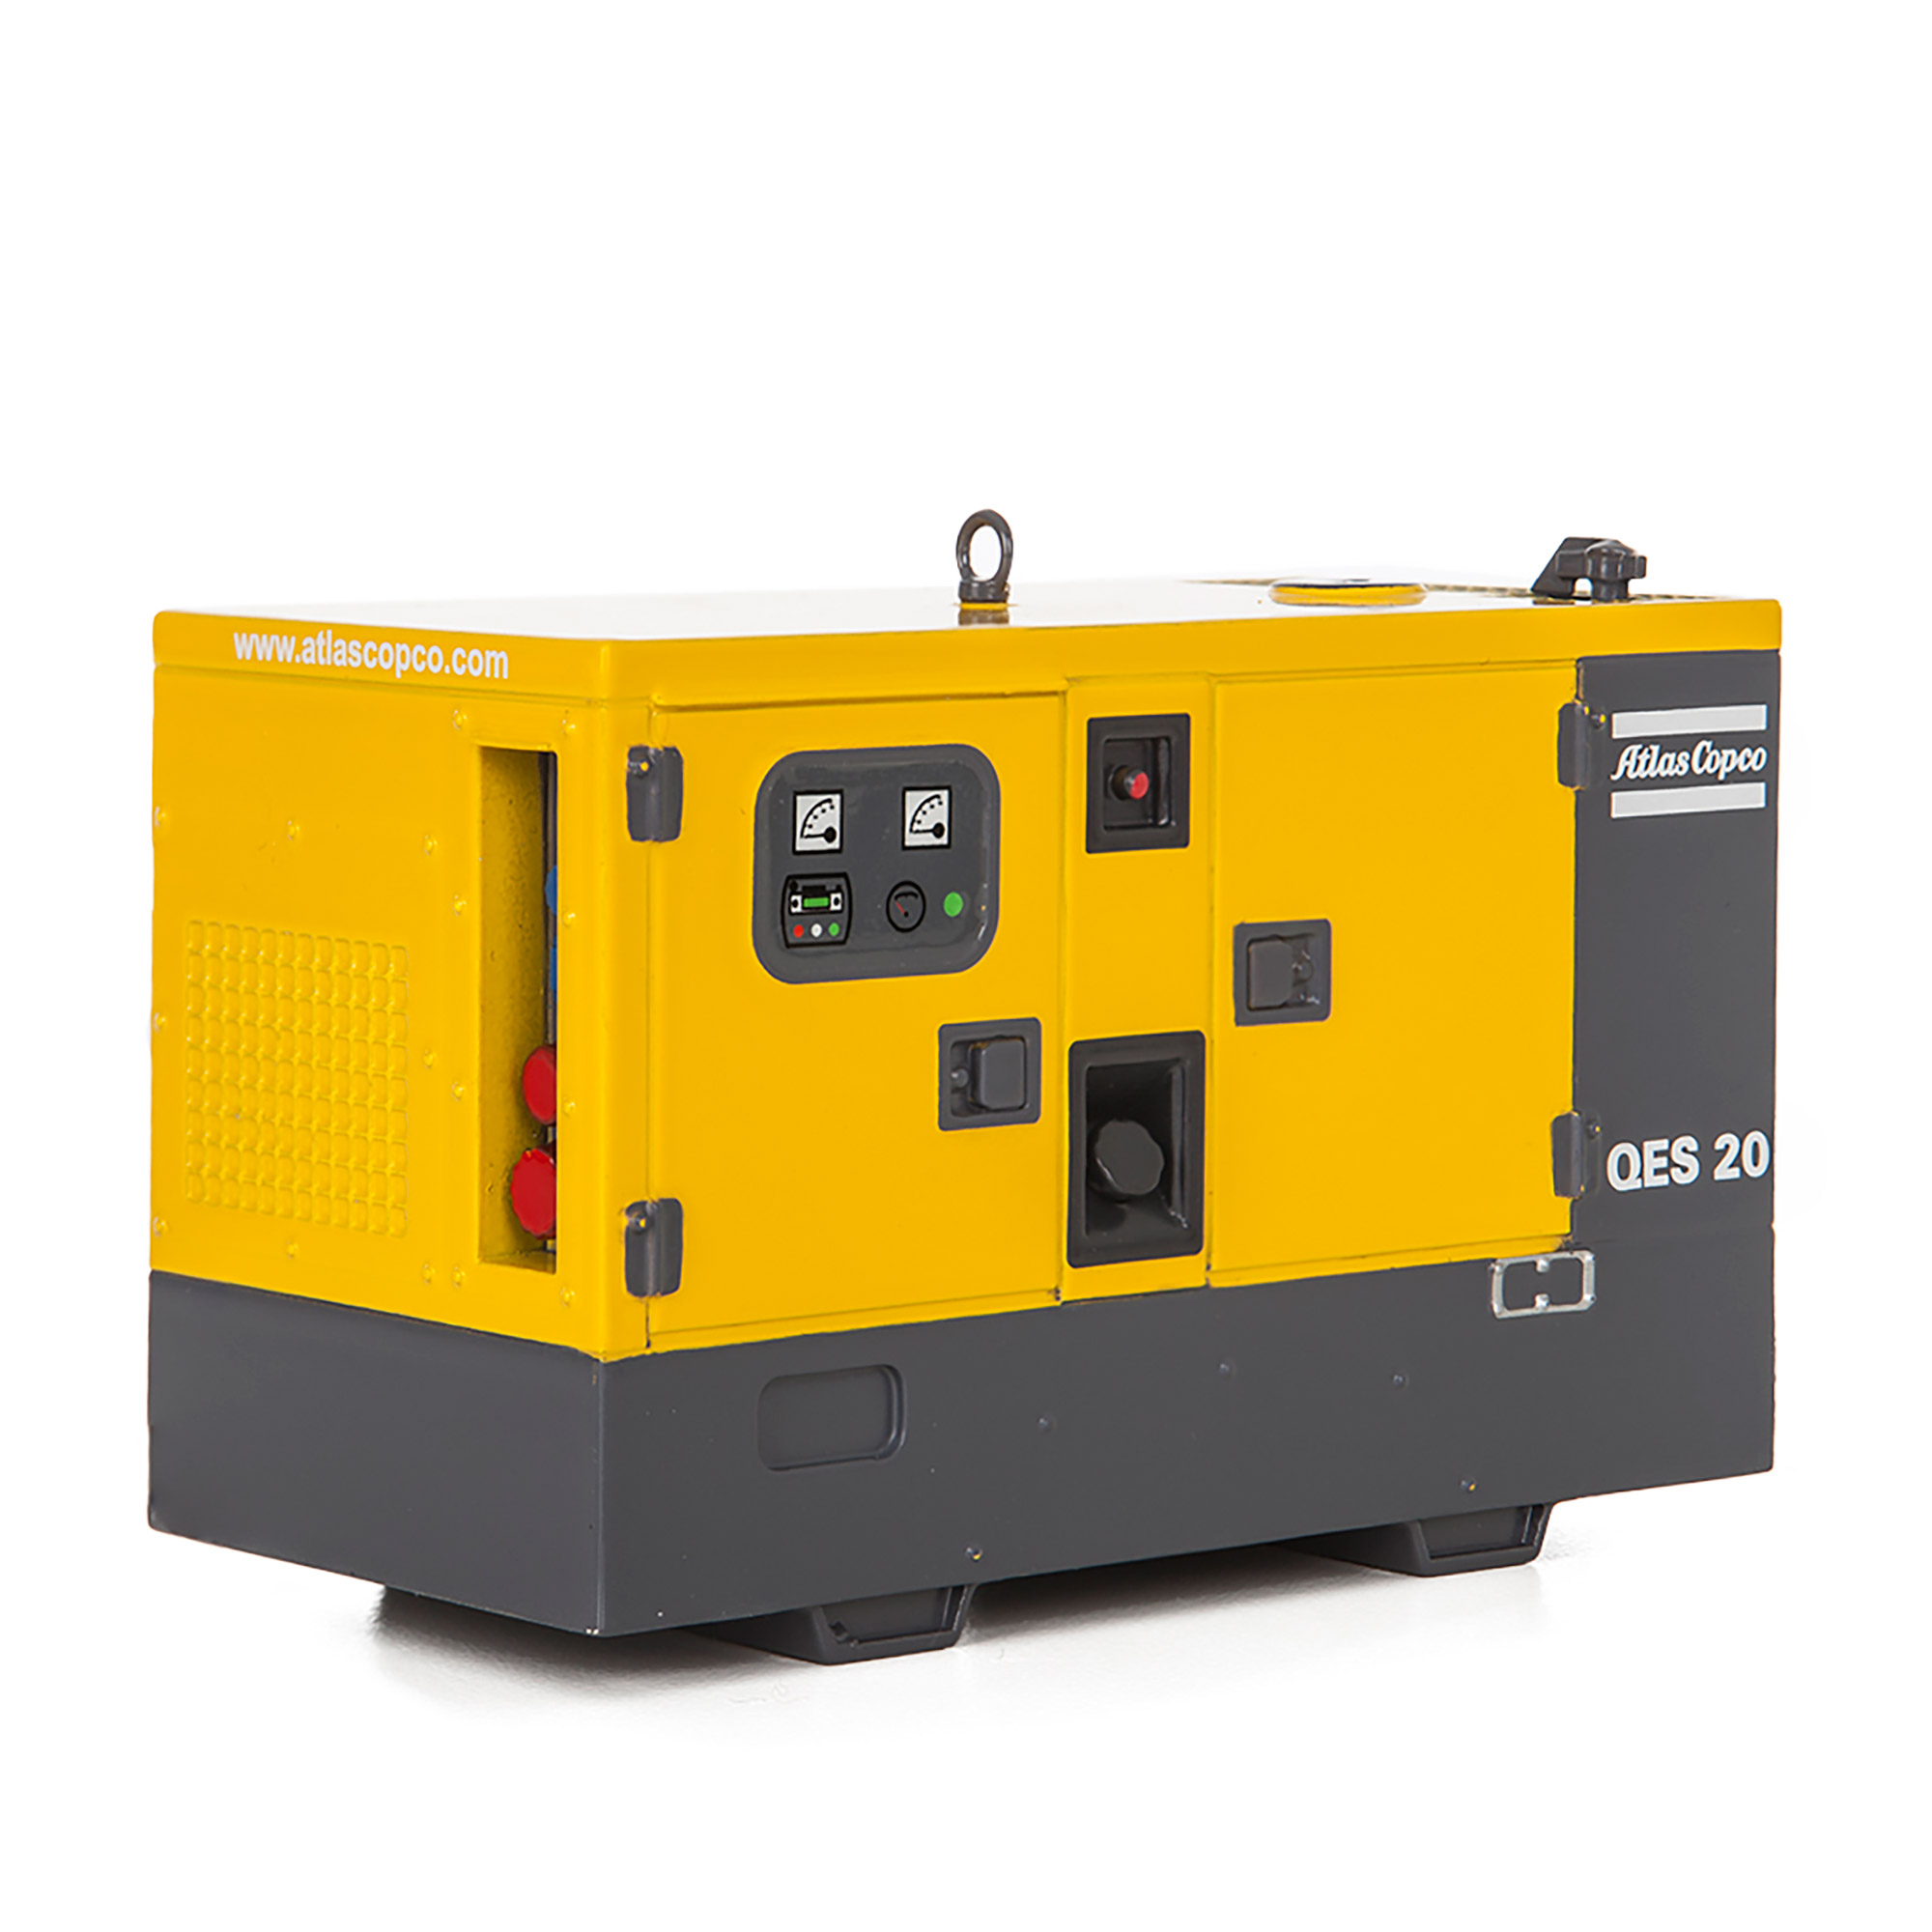 Detailed scale model of the generator QES 20. Dependable power for the toughest worksites. Specifically developed for the construction and general rental industries, the QES range is easy to use and straightforward to maintain. It´s the perfect Predictable Power choise, even for the most demanding worksites.